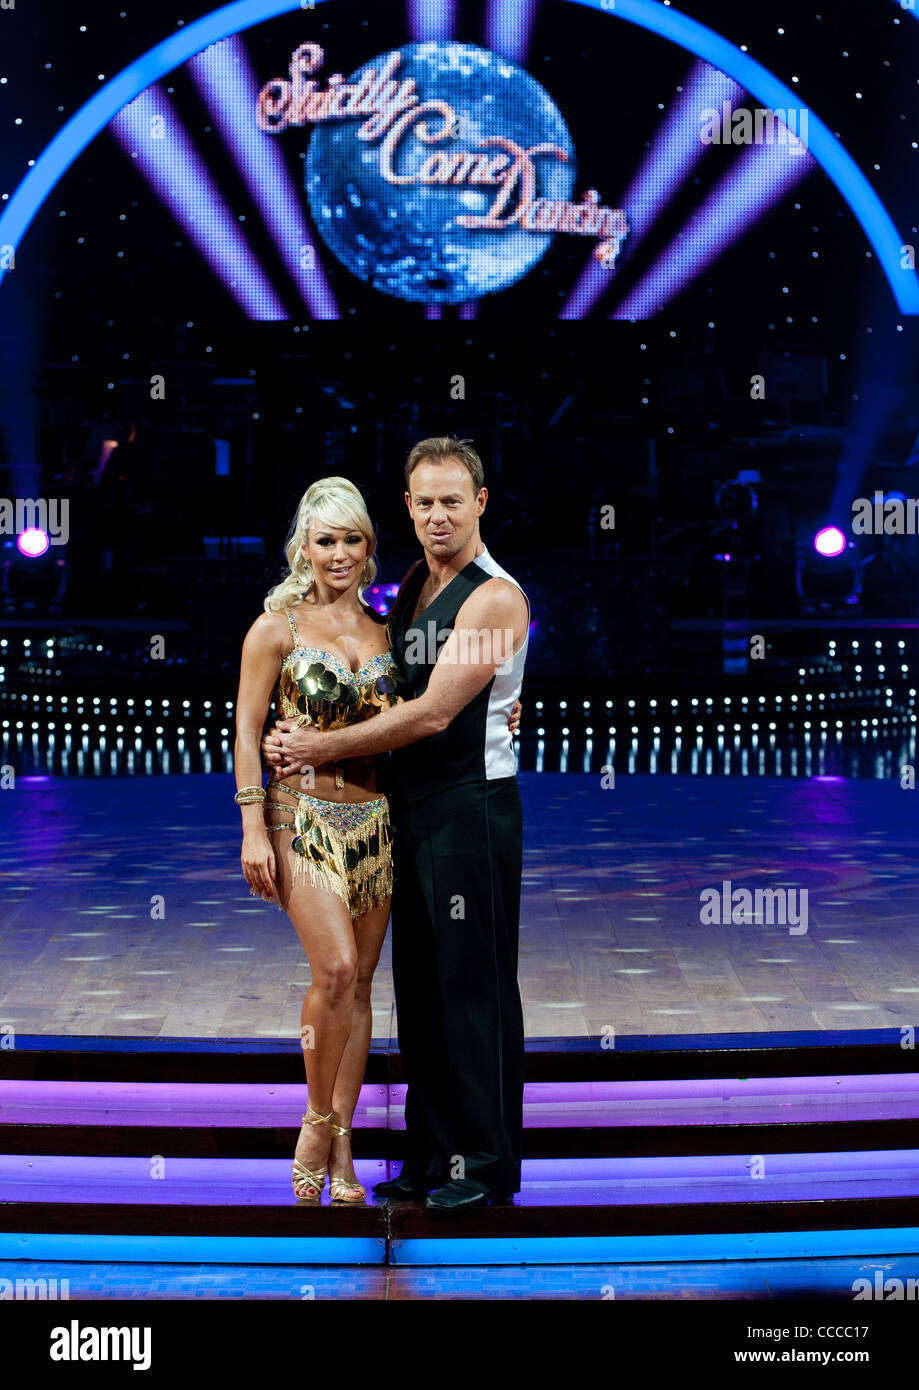 Kristina Rihanoff and Jason Donavon at the Strictly Come Dancing photo shoot at the national indoor arena in Birmingham. - Stock Image